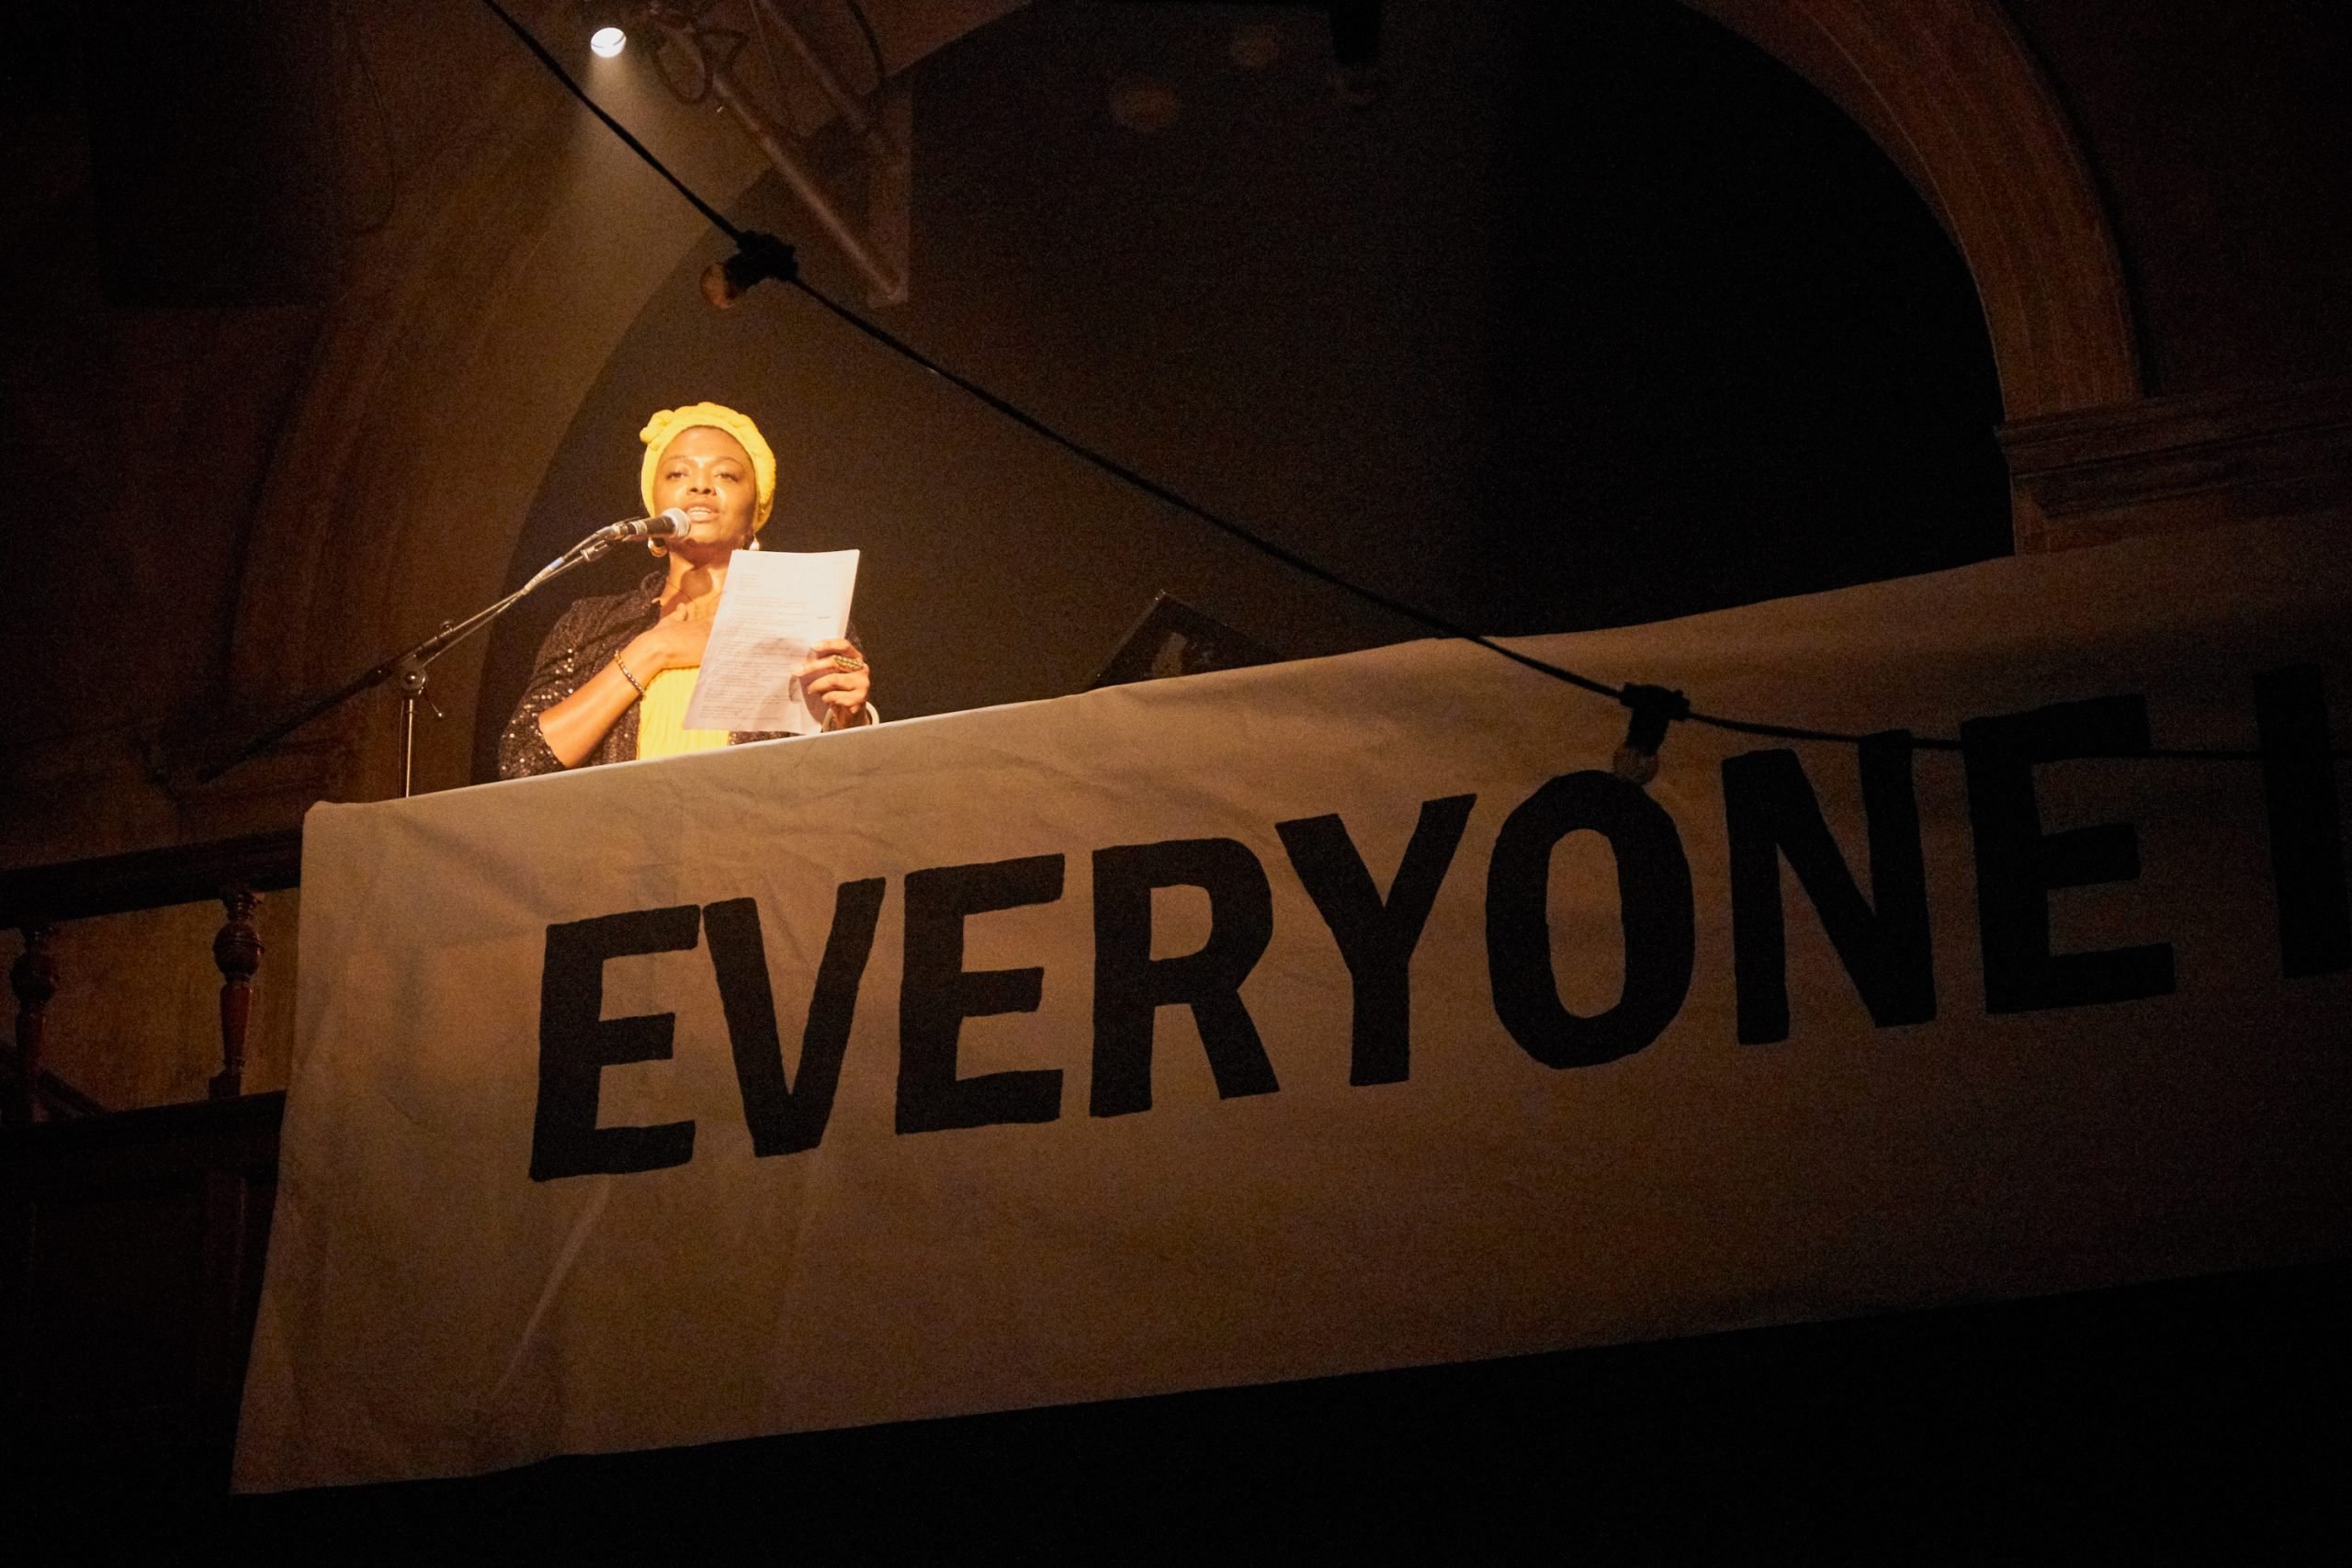 Picture of poet Zena Edwards standing in front of a banner which reads 'Everyone'.